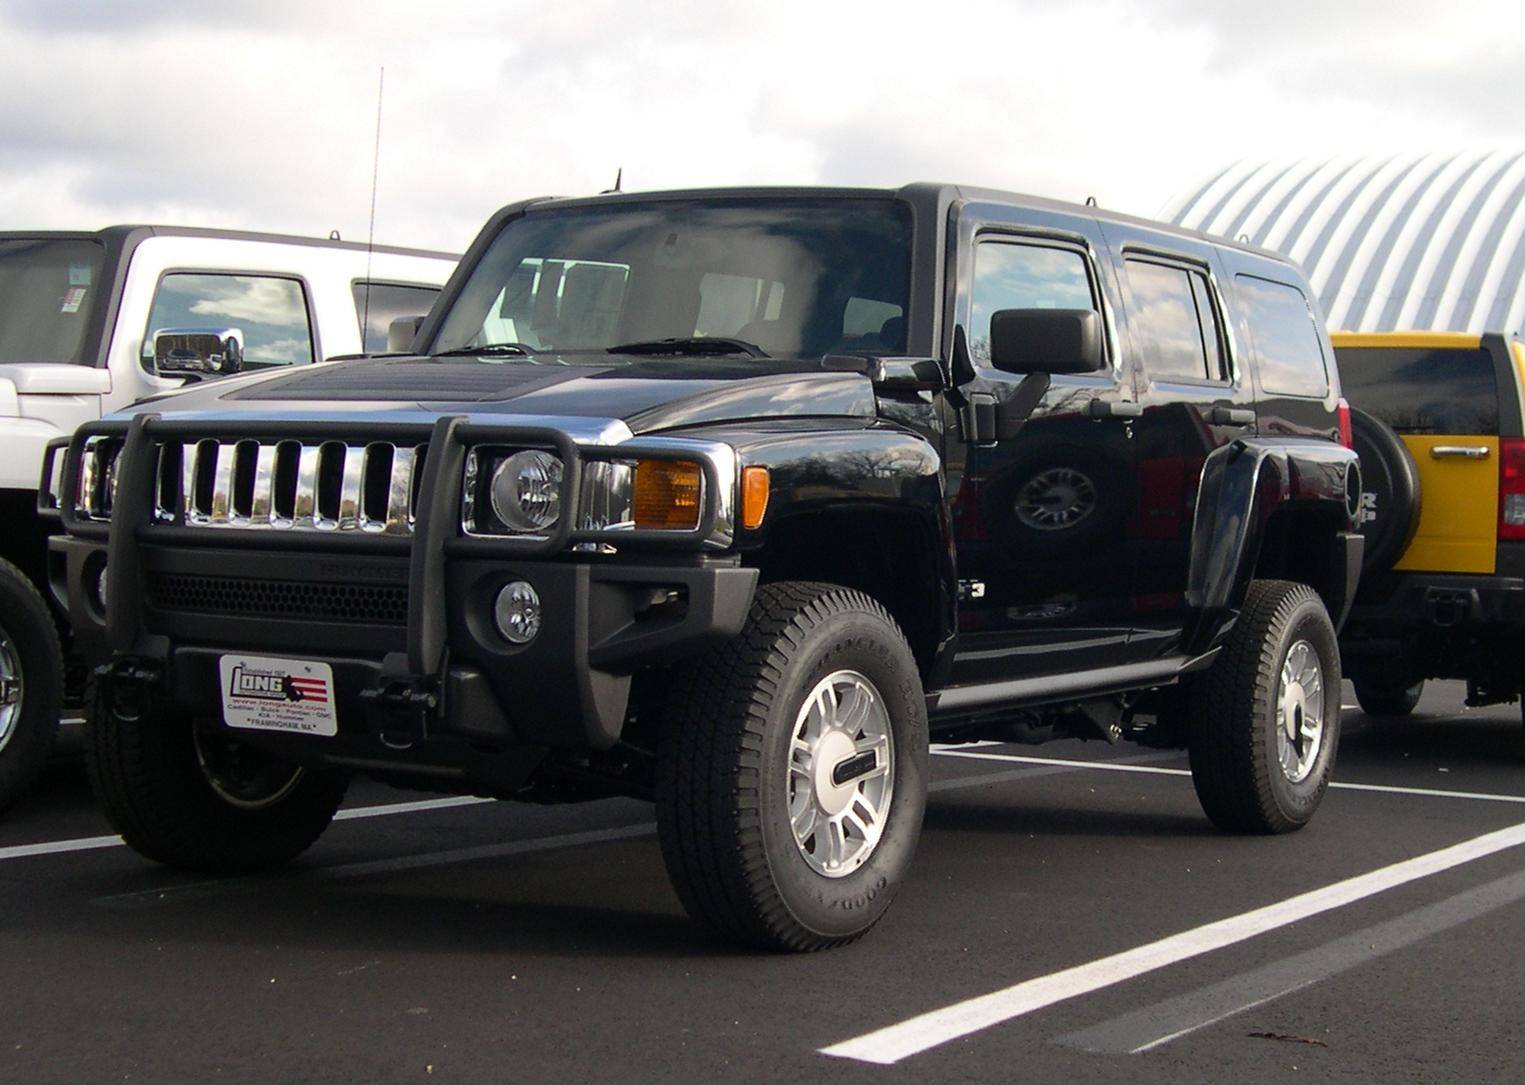 11114 HUMMER H11114 Adventure - 1114dr SUV 11114.1114L 1114x1114 Manual | 2010 hummer h3 mpg